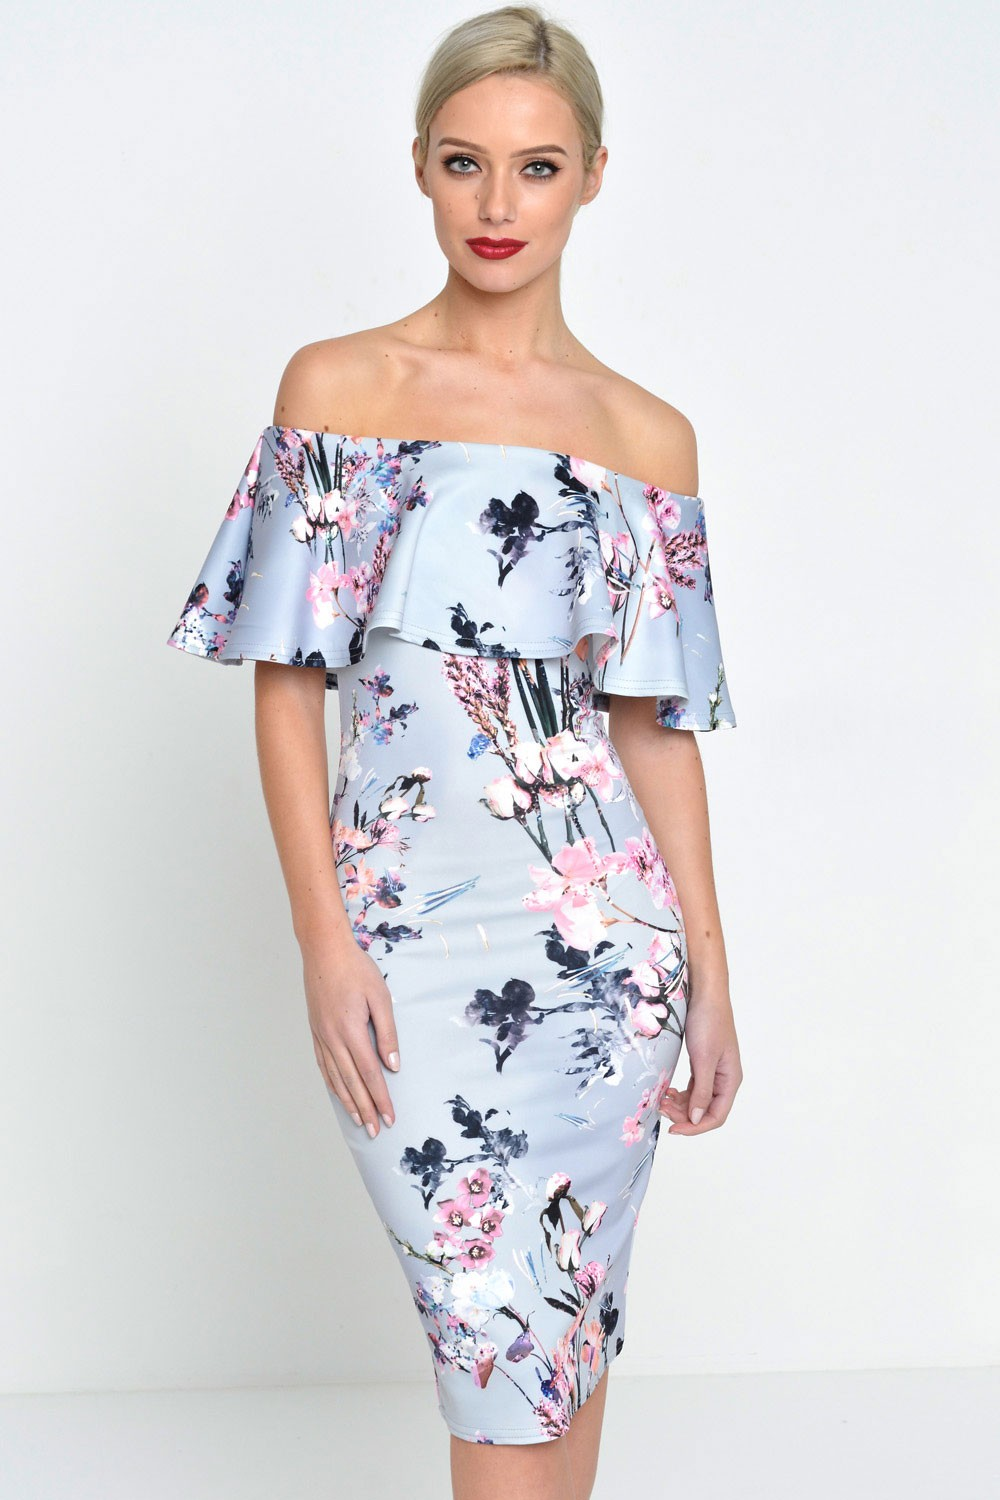 07a84a55cc06 ... bardot off the shoulder bodycon pencil midi dress dresses in white or  black floral print and; e5537b978 grey floral 1 ...